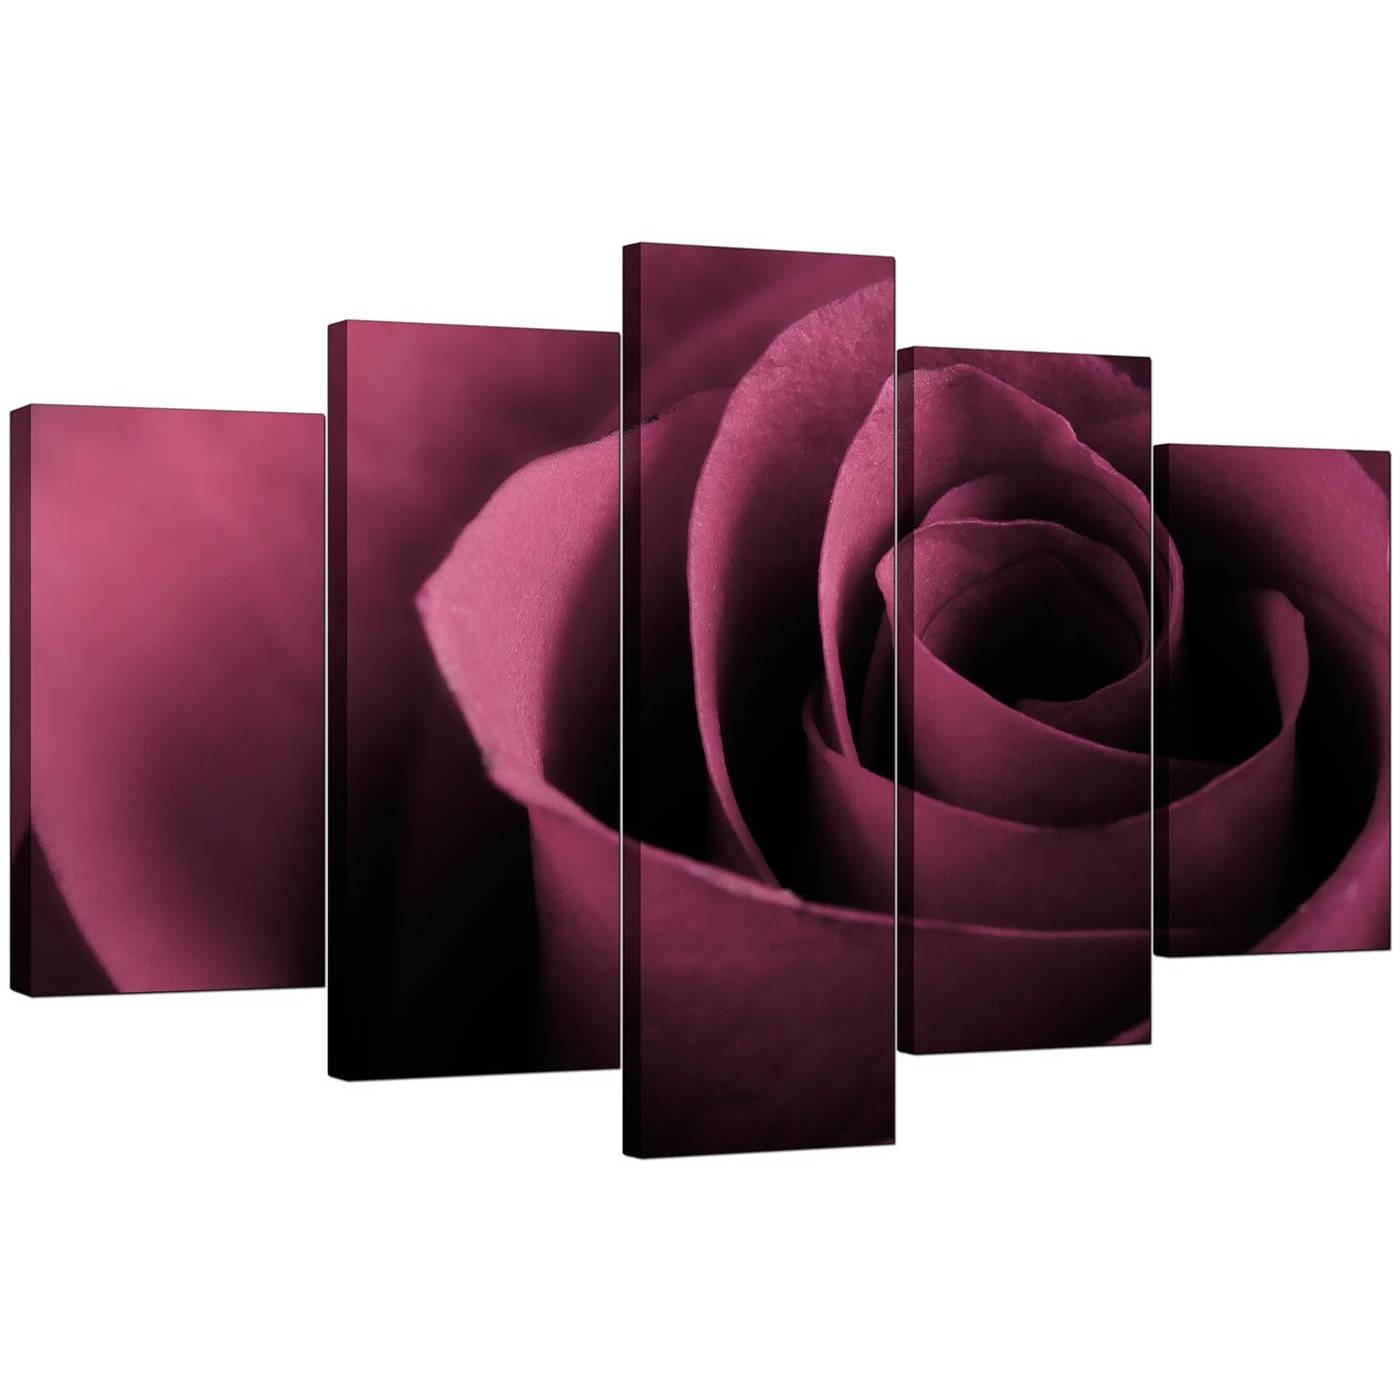 Extra Large Rose Canvas Wall Art Five Piece In Plum With Regard To Latest Rose Canvas Wall Art (Gallery 15 of 20)